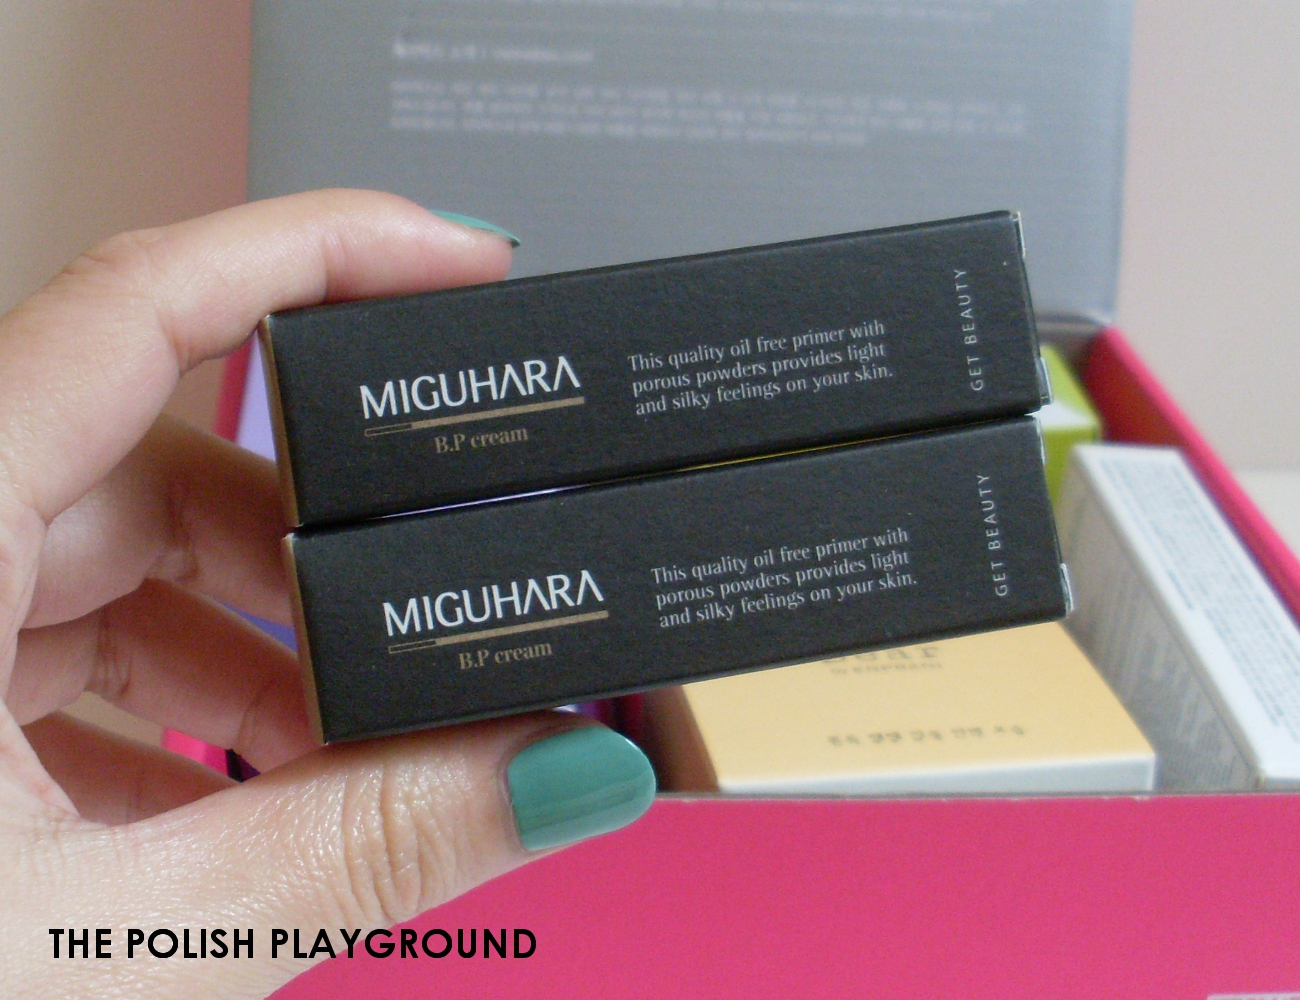 Memebox Luckybox #5 Unboxing - Miguhara B.P Cream